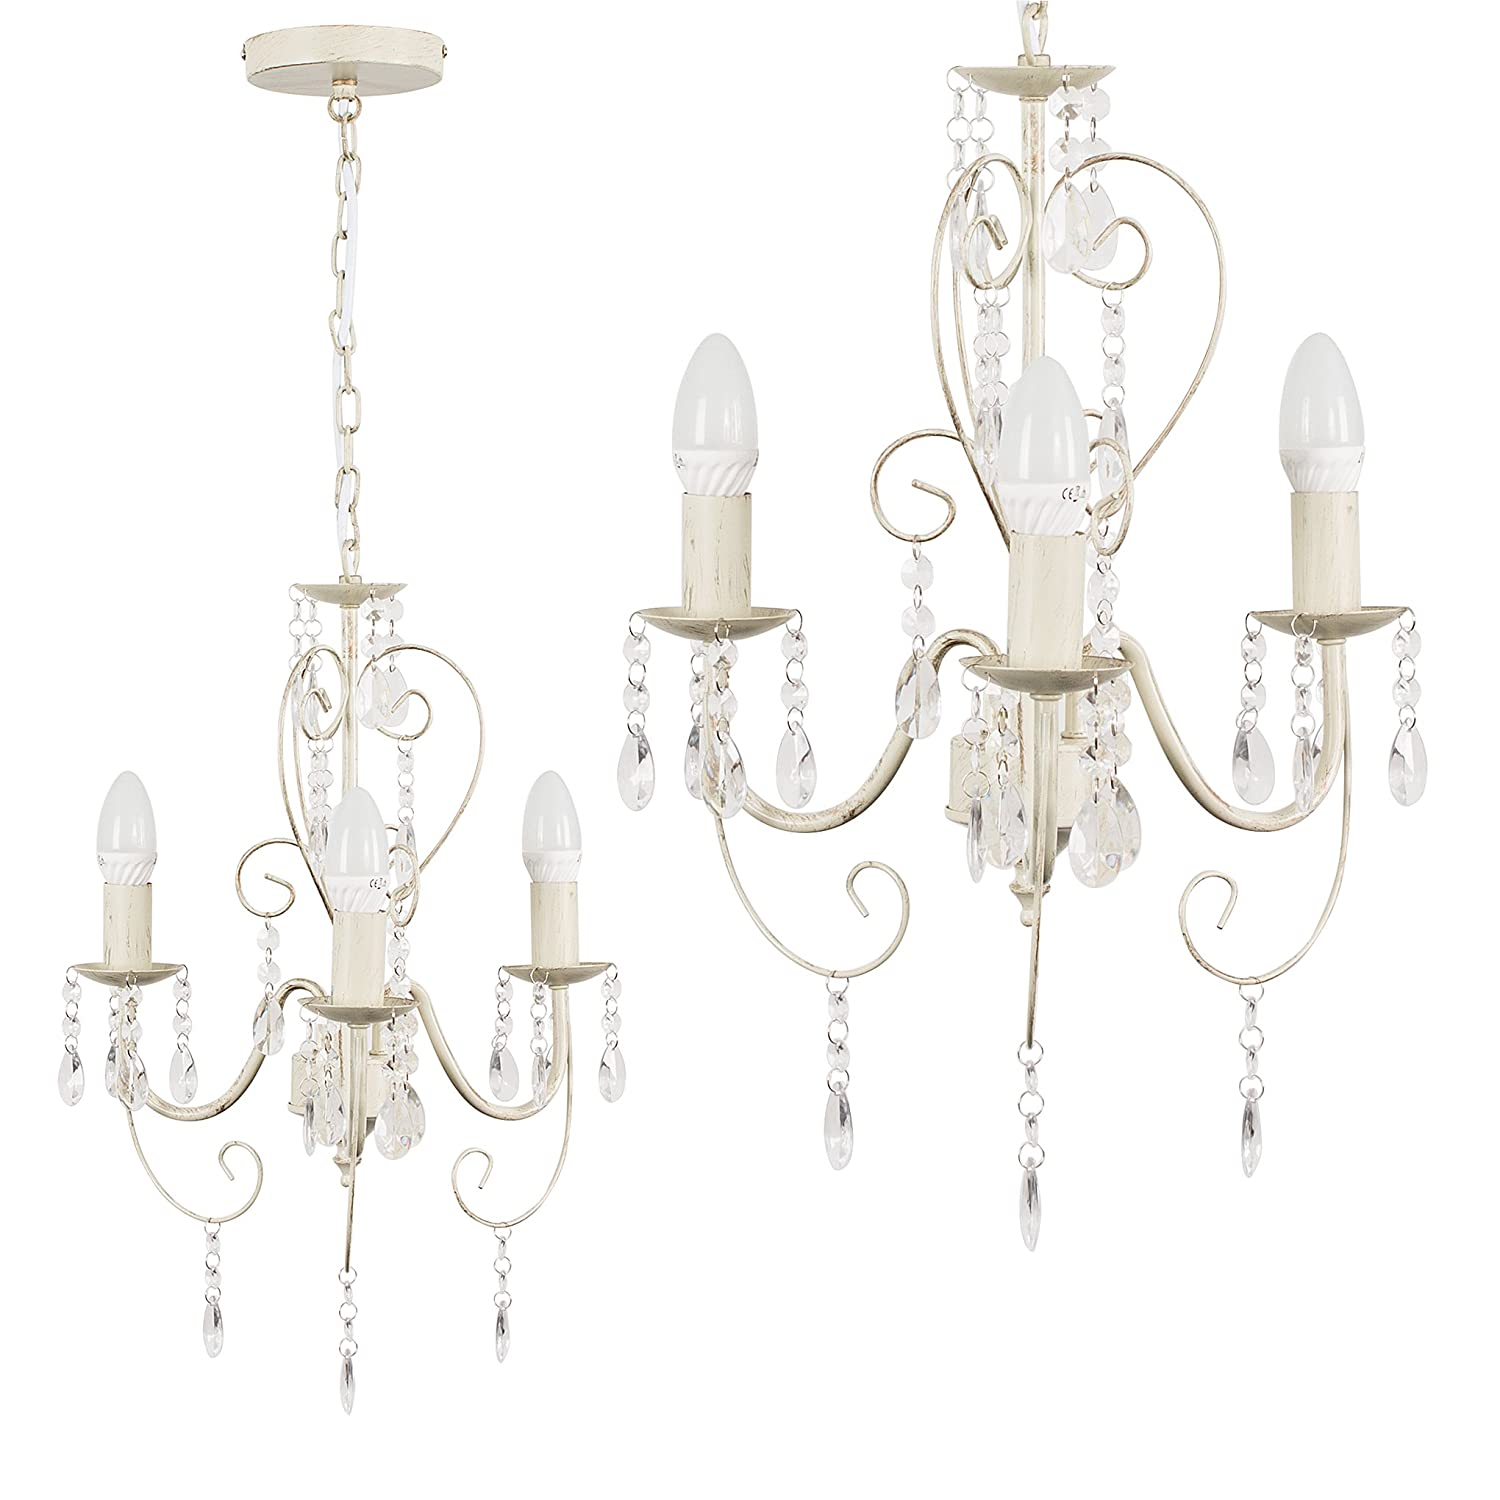 Grey Ornate Vintage Style Shabby Chic 3 Way Ceiling Light Chandelier With Beautiful Acrylic Jewels MiniSun